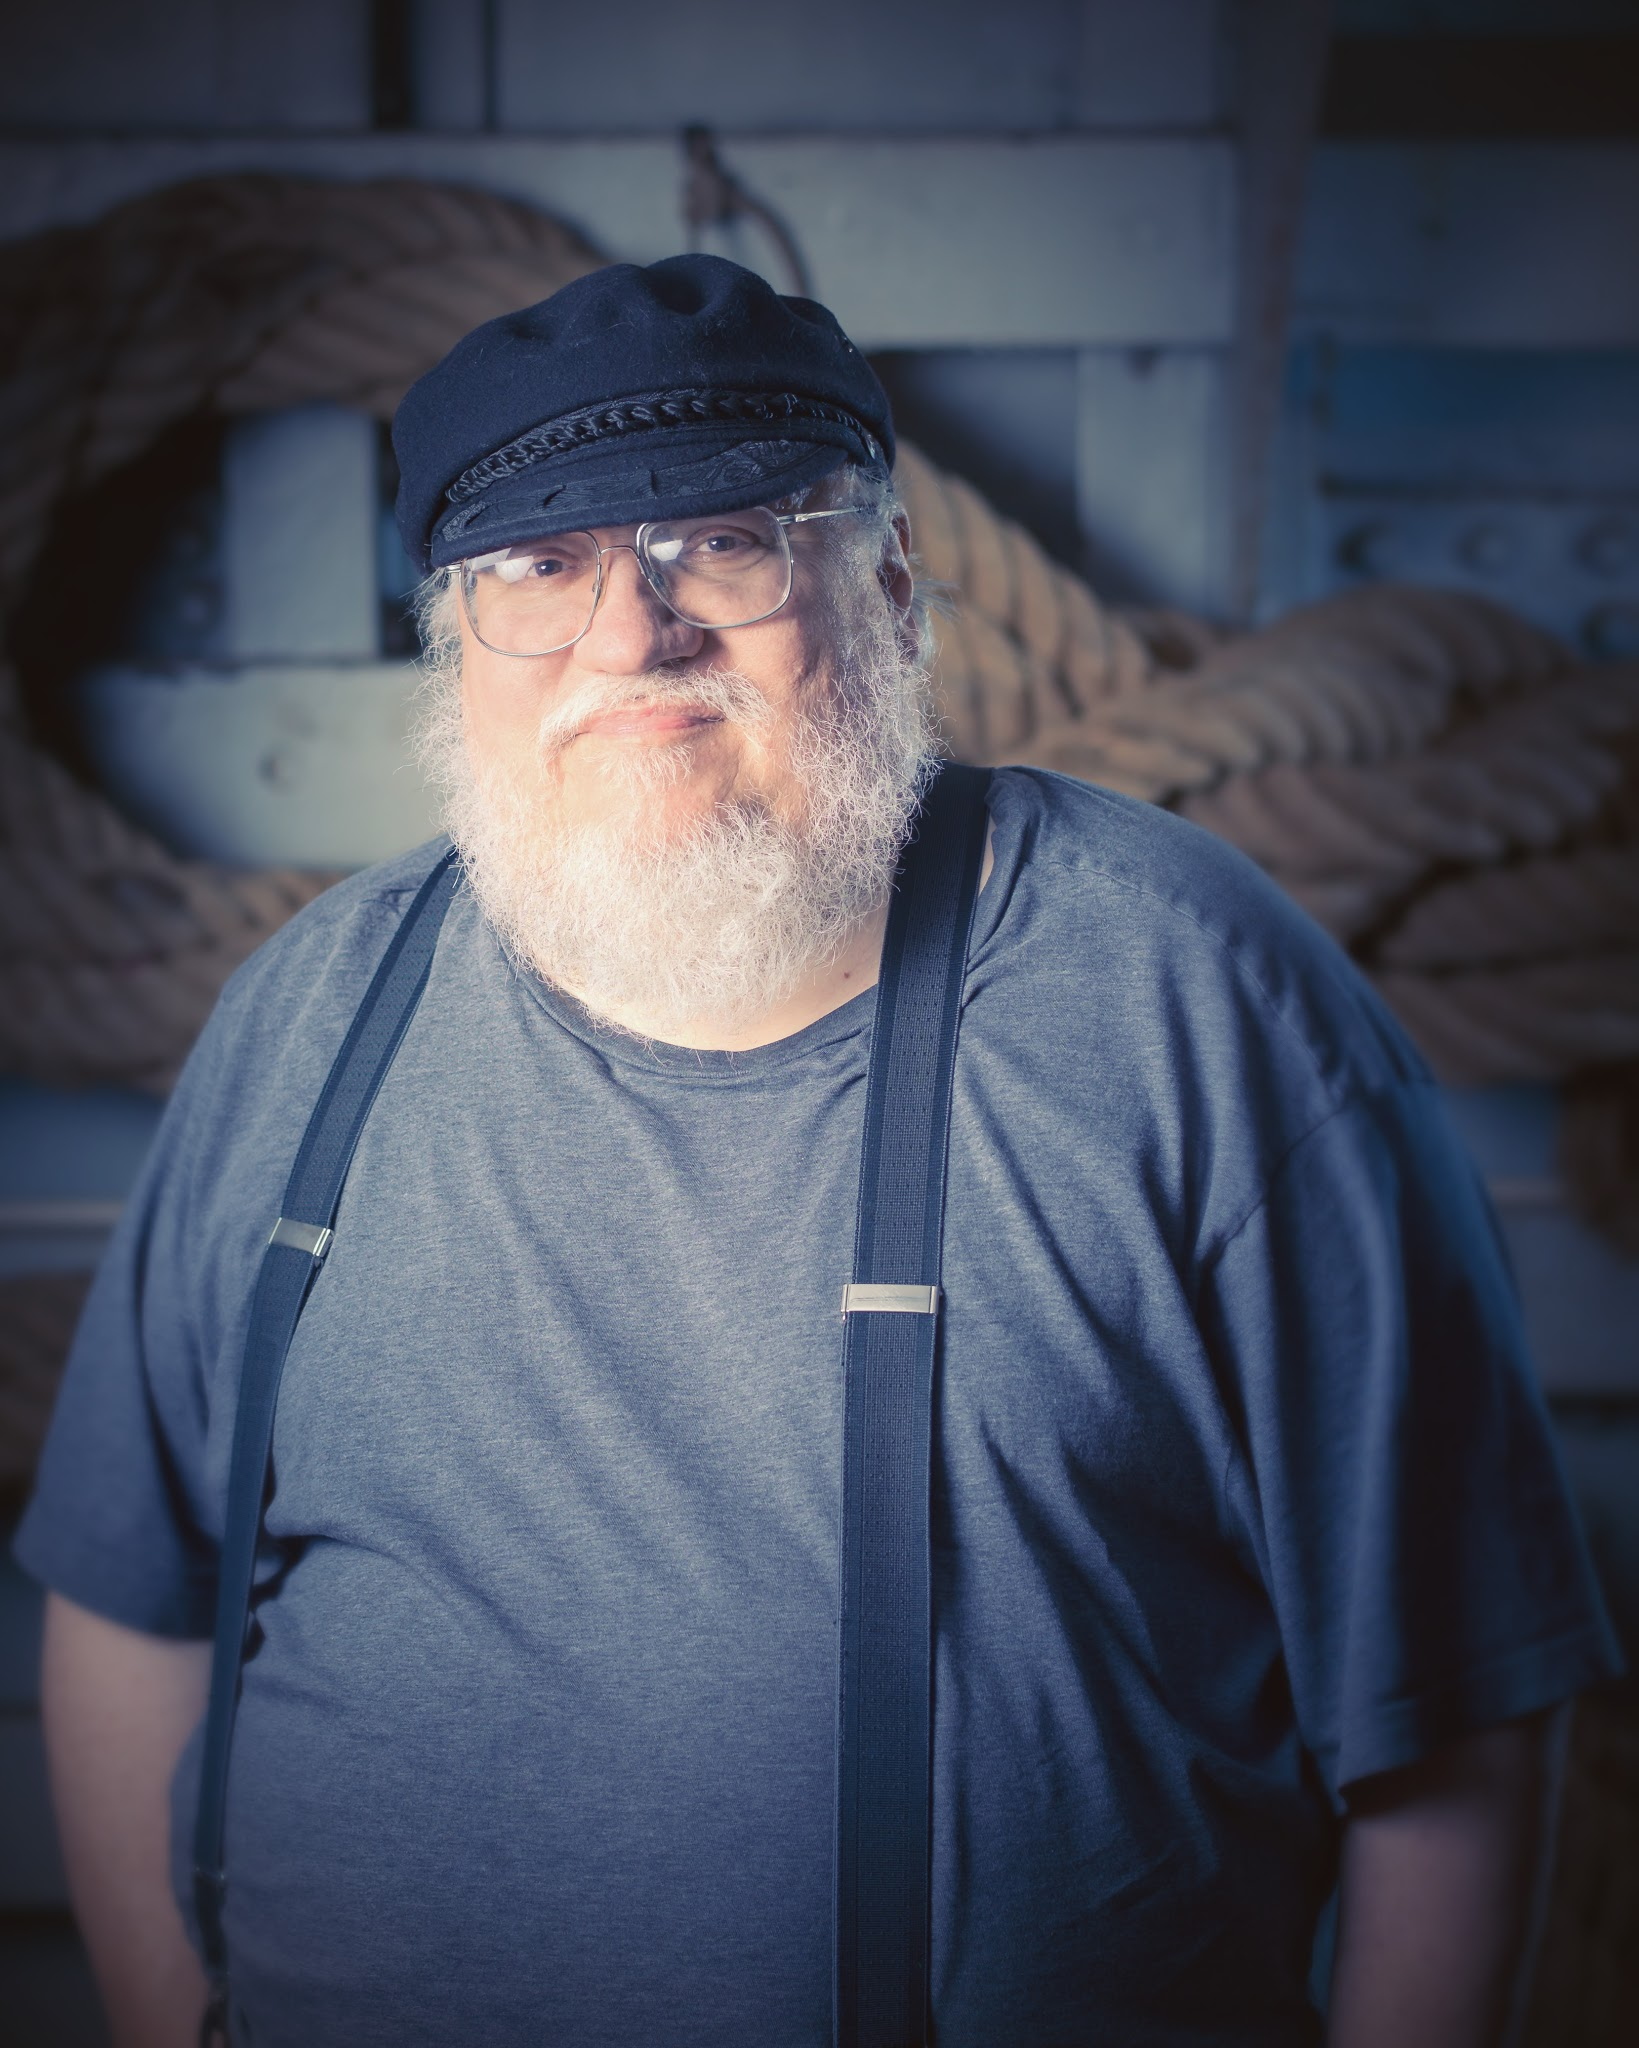 George Rr Martin Libros Game Of Thrones George R R Martin Wikipedia Den Frie Encyklopædi